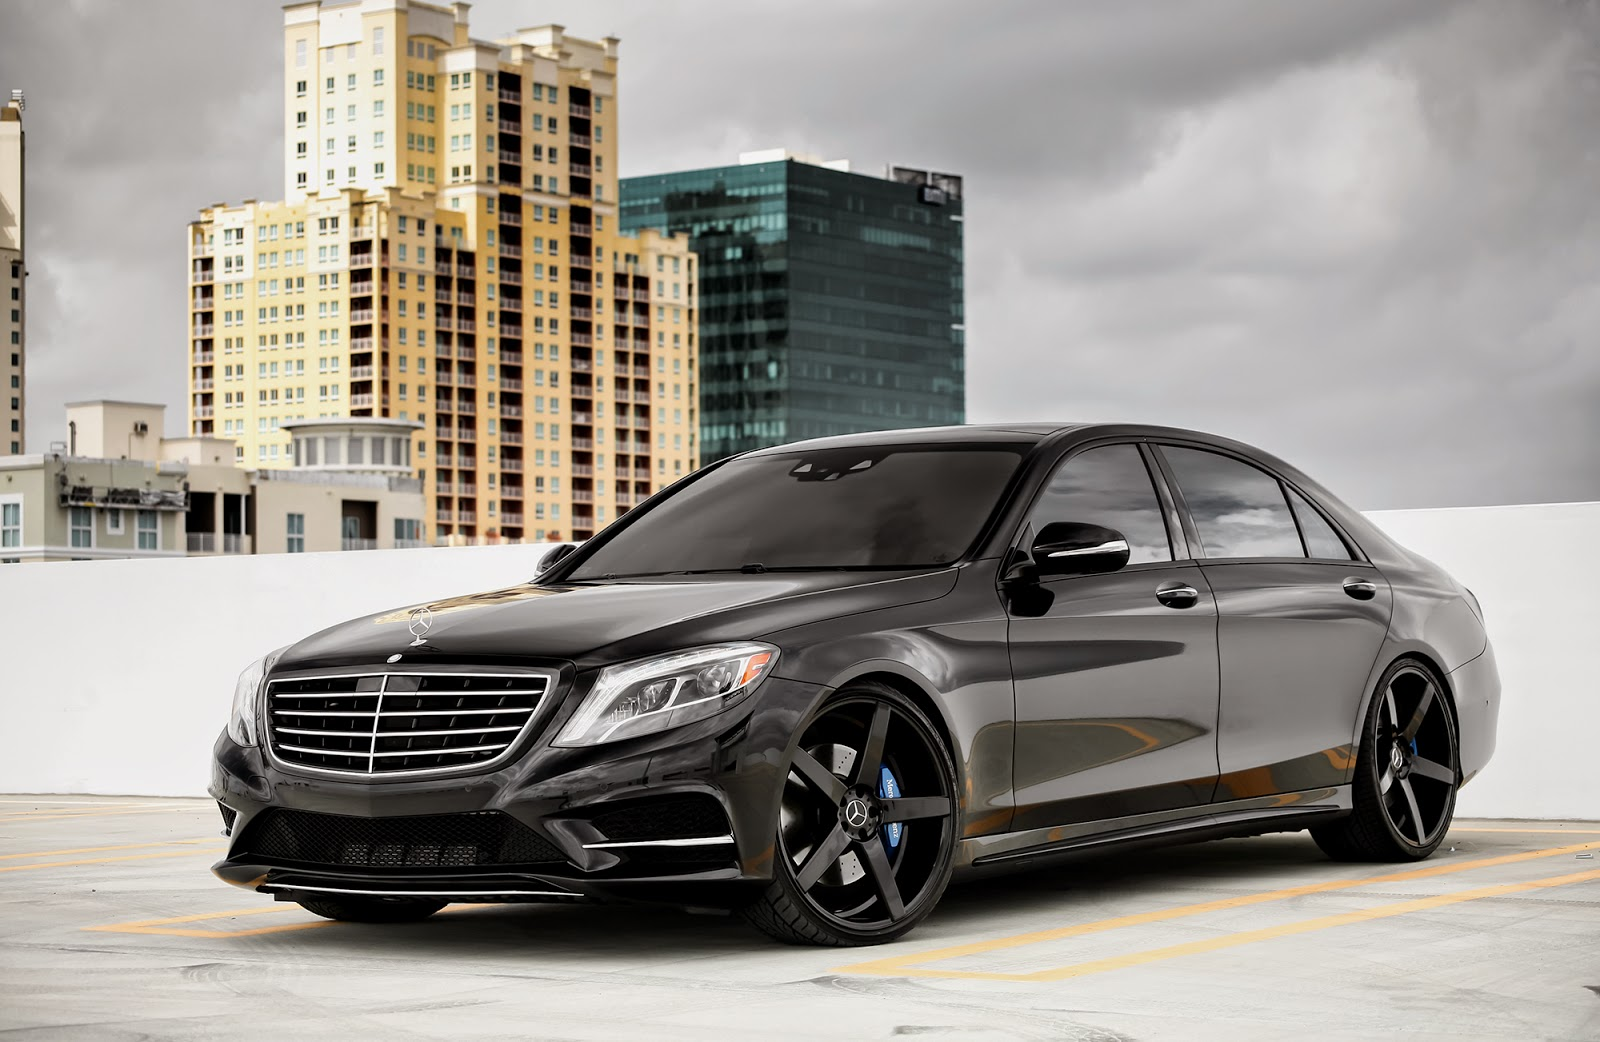 Supercars show mercedes benz s550 by xo luxury wheels for Mercedes benz s550 rims